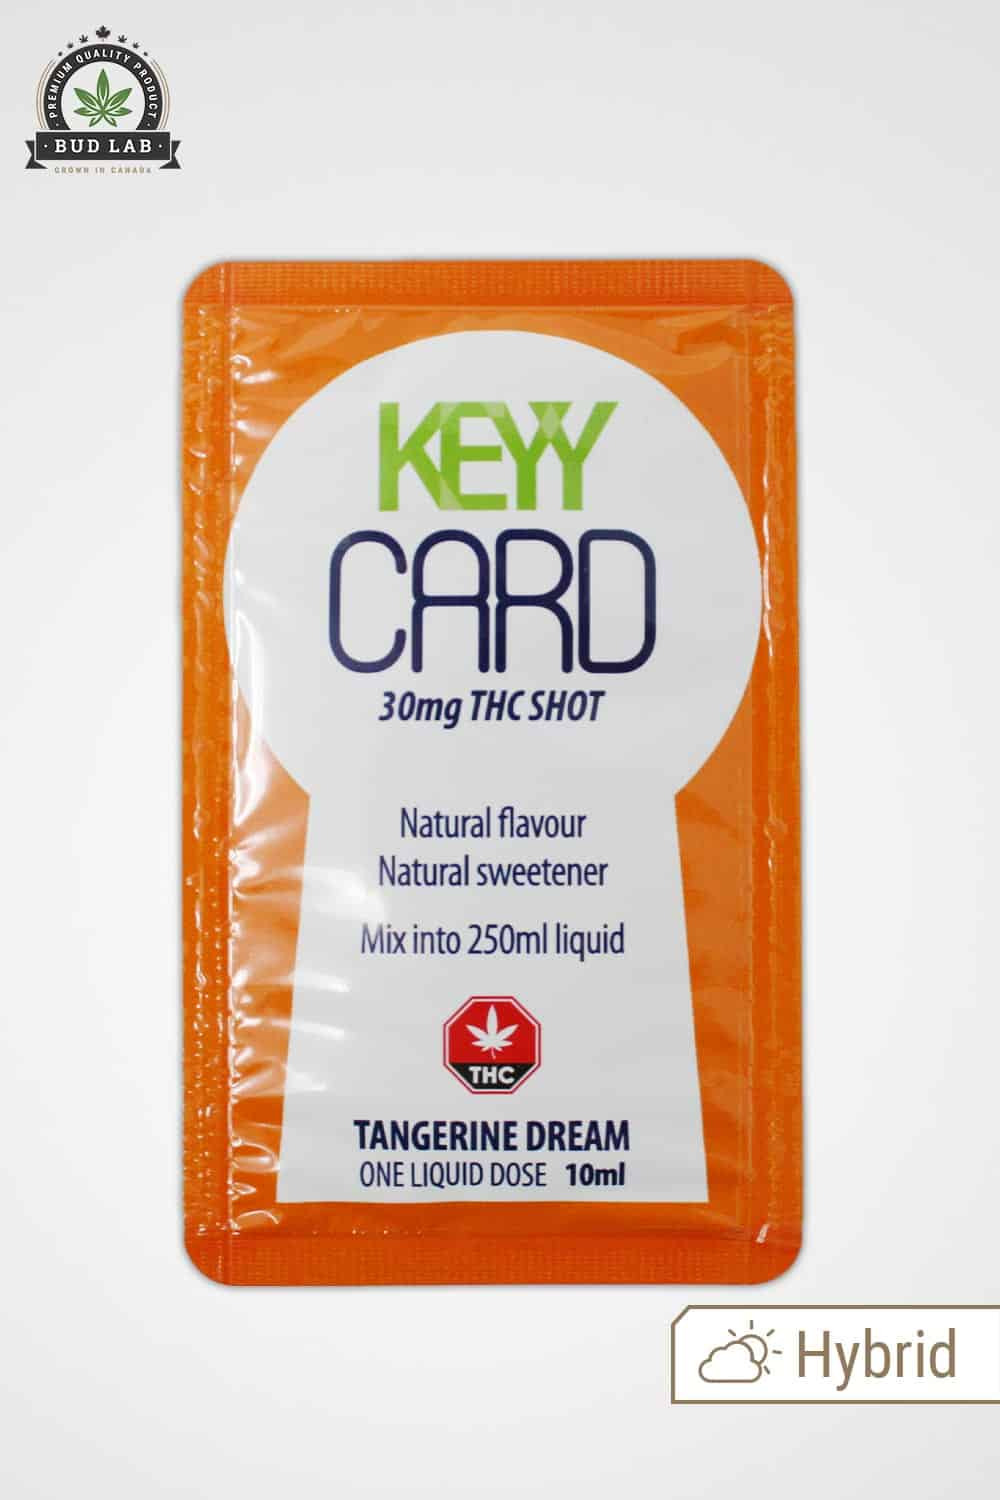 Keyy Card THC Tangerine Dream BudLab, Front of Package